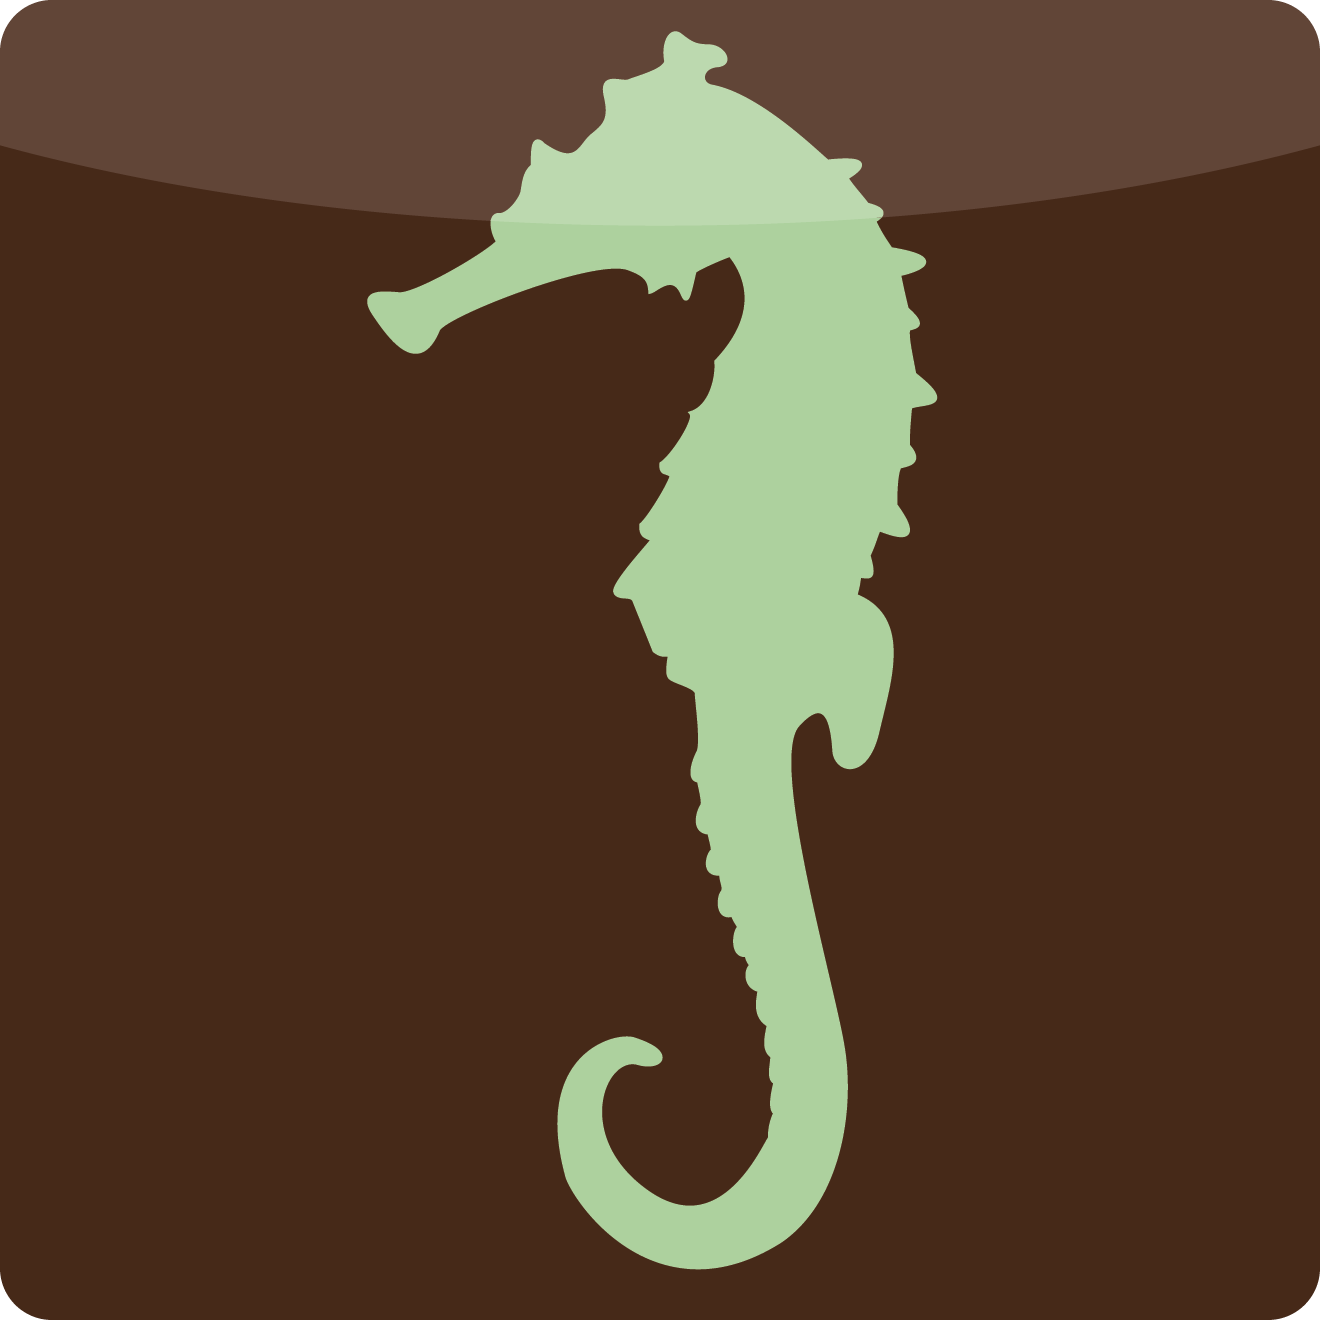 The Seahorsesseahorse